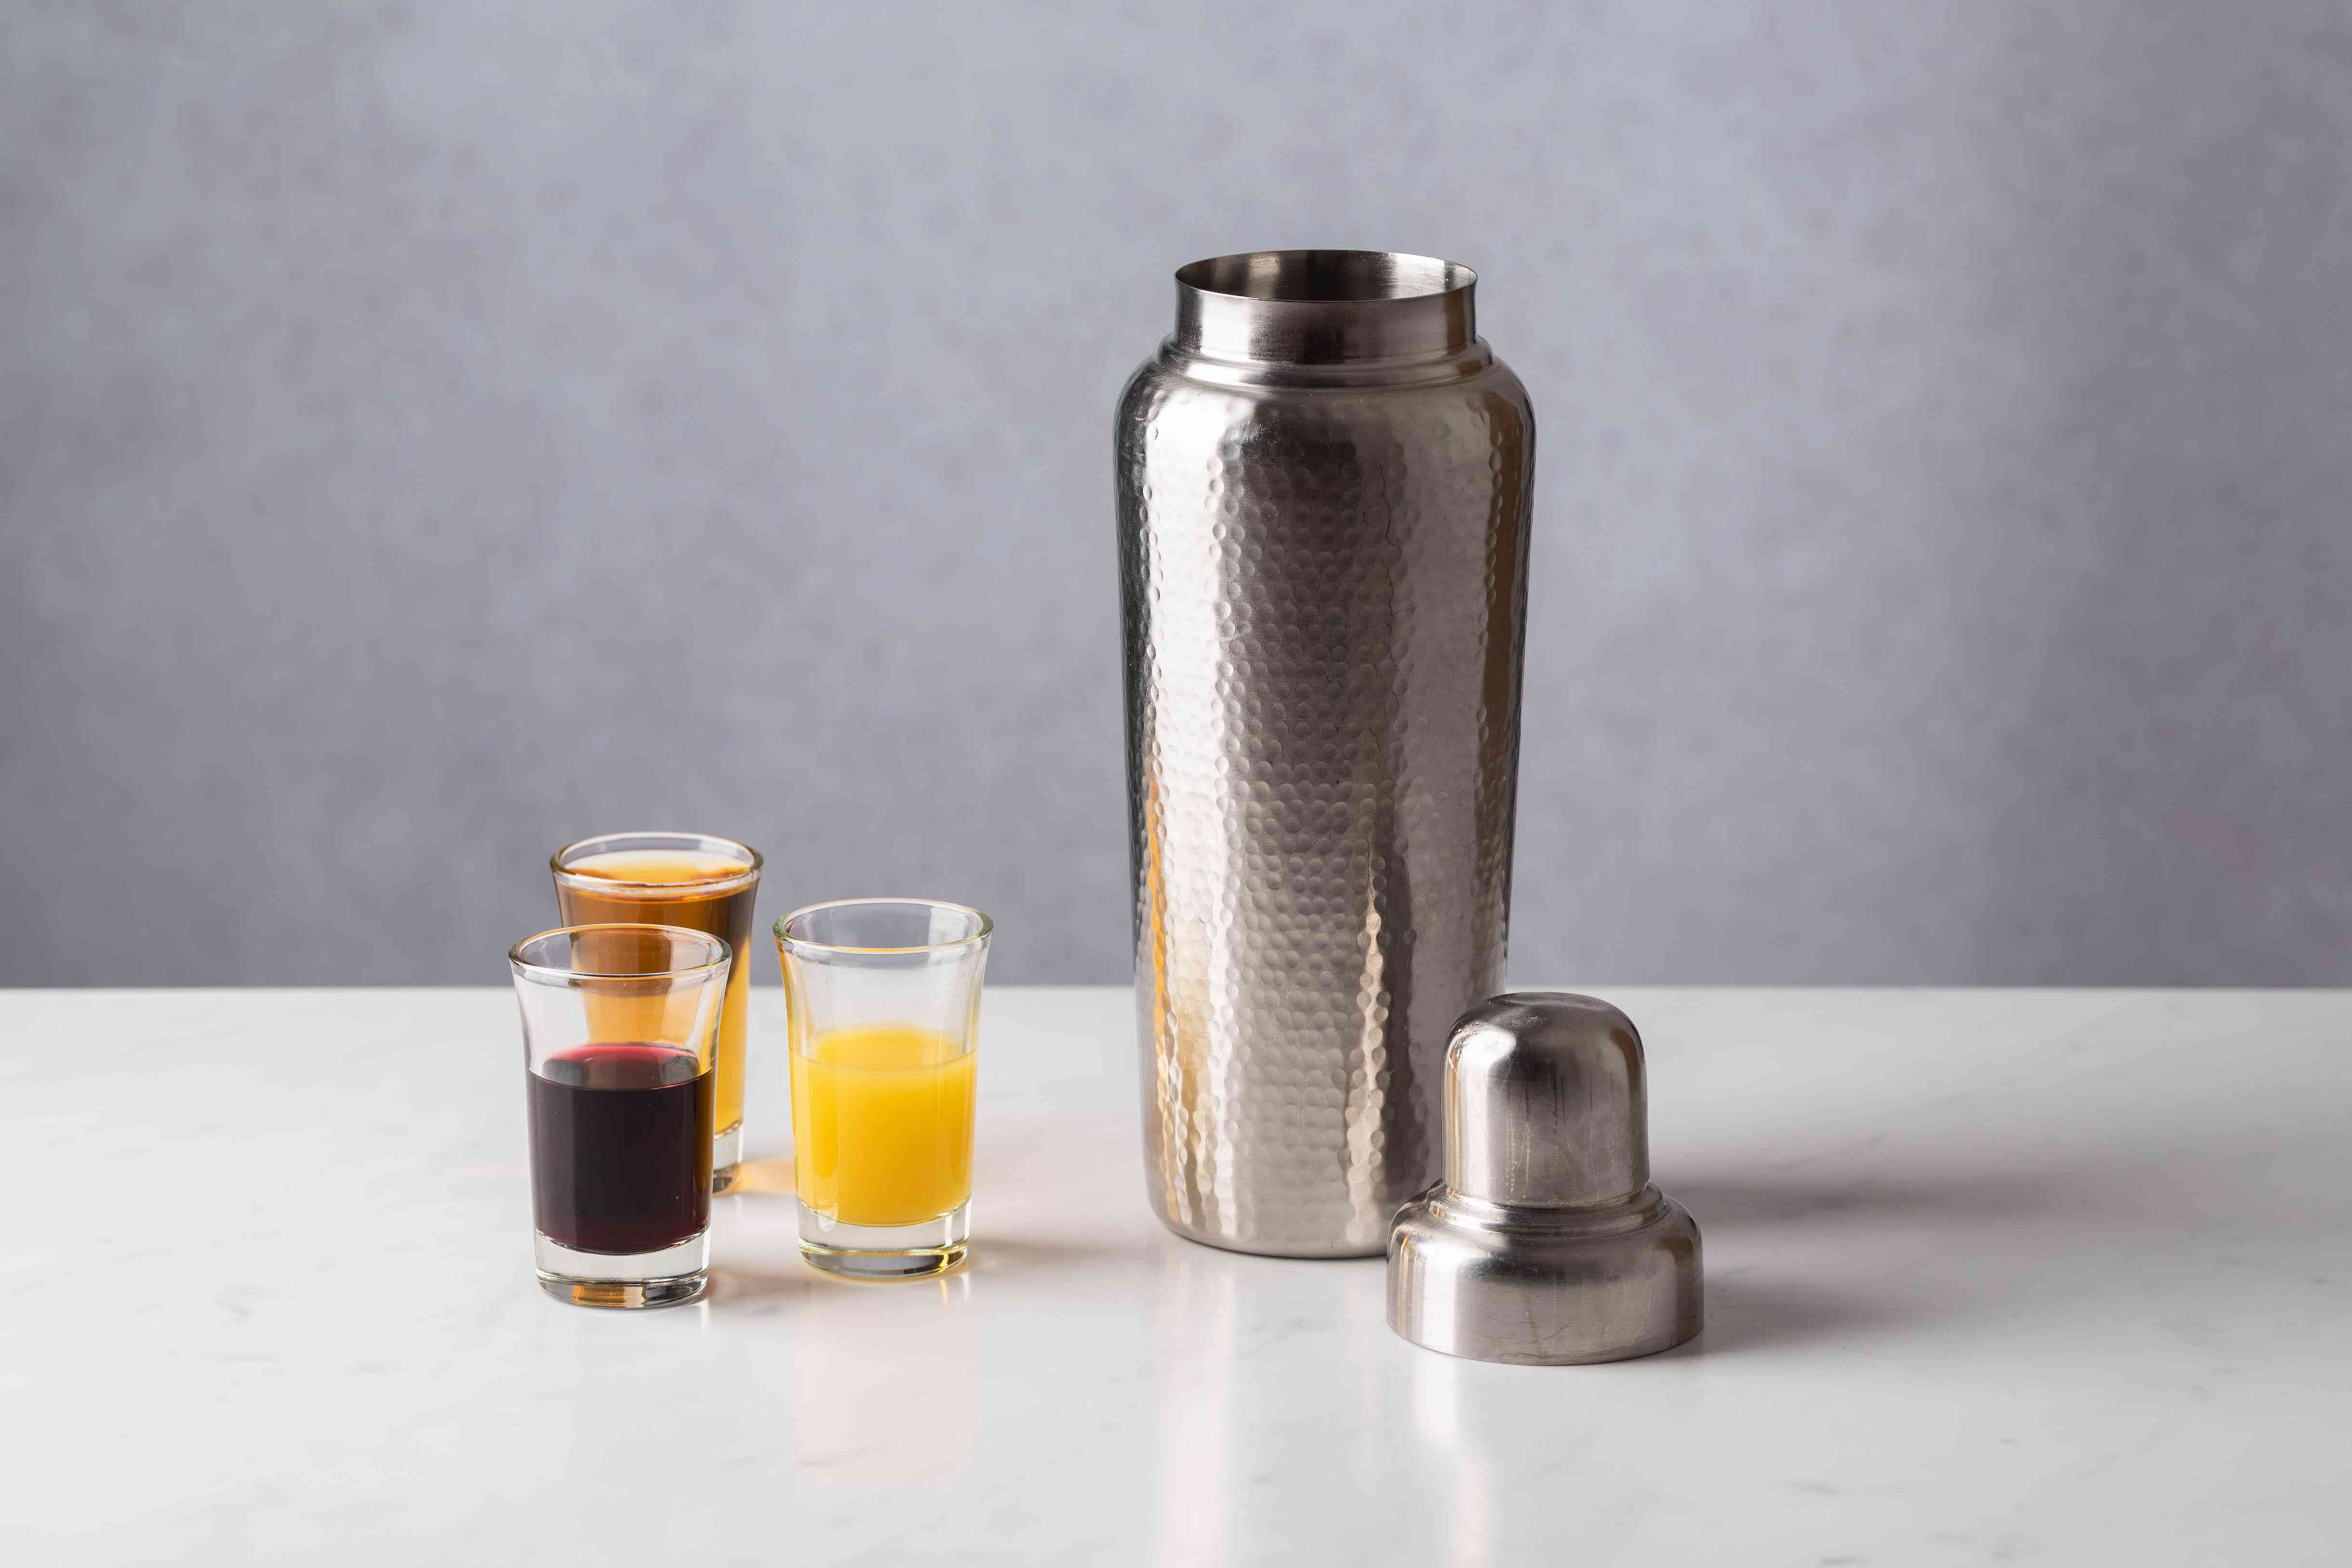 brandy, port, and orange juice in shot glasses, cocktail shaker filled with ice